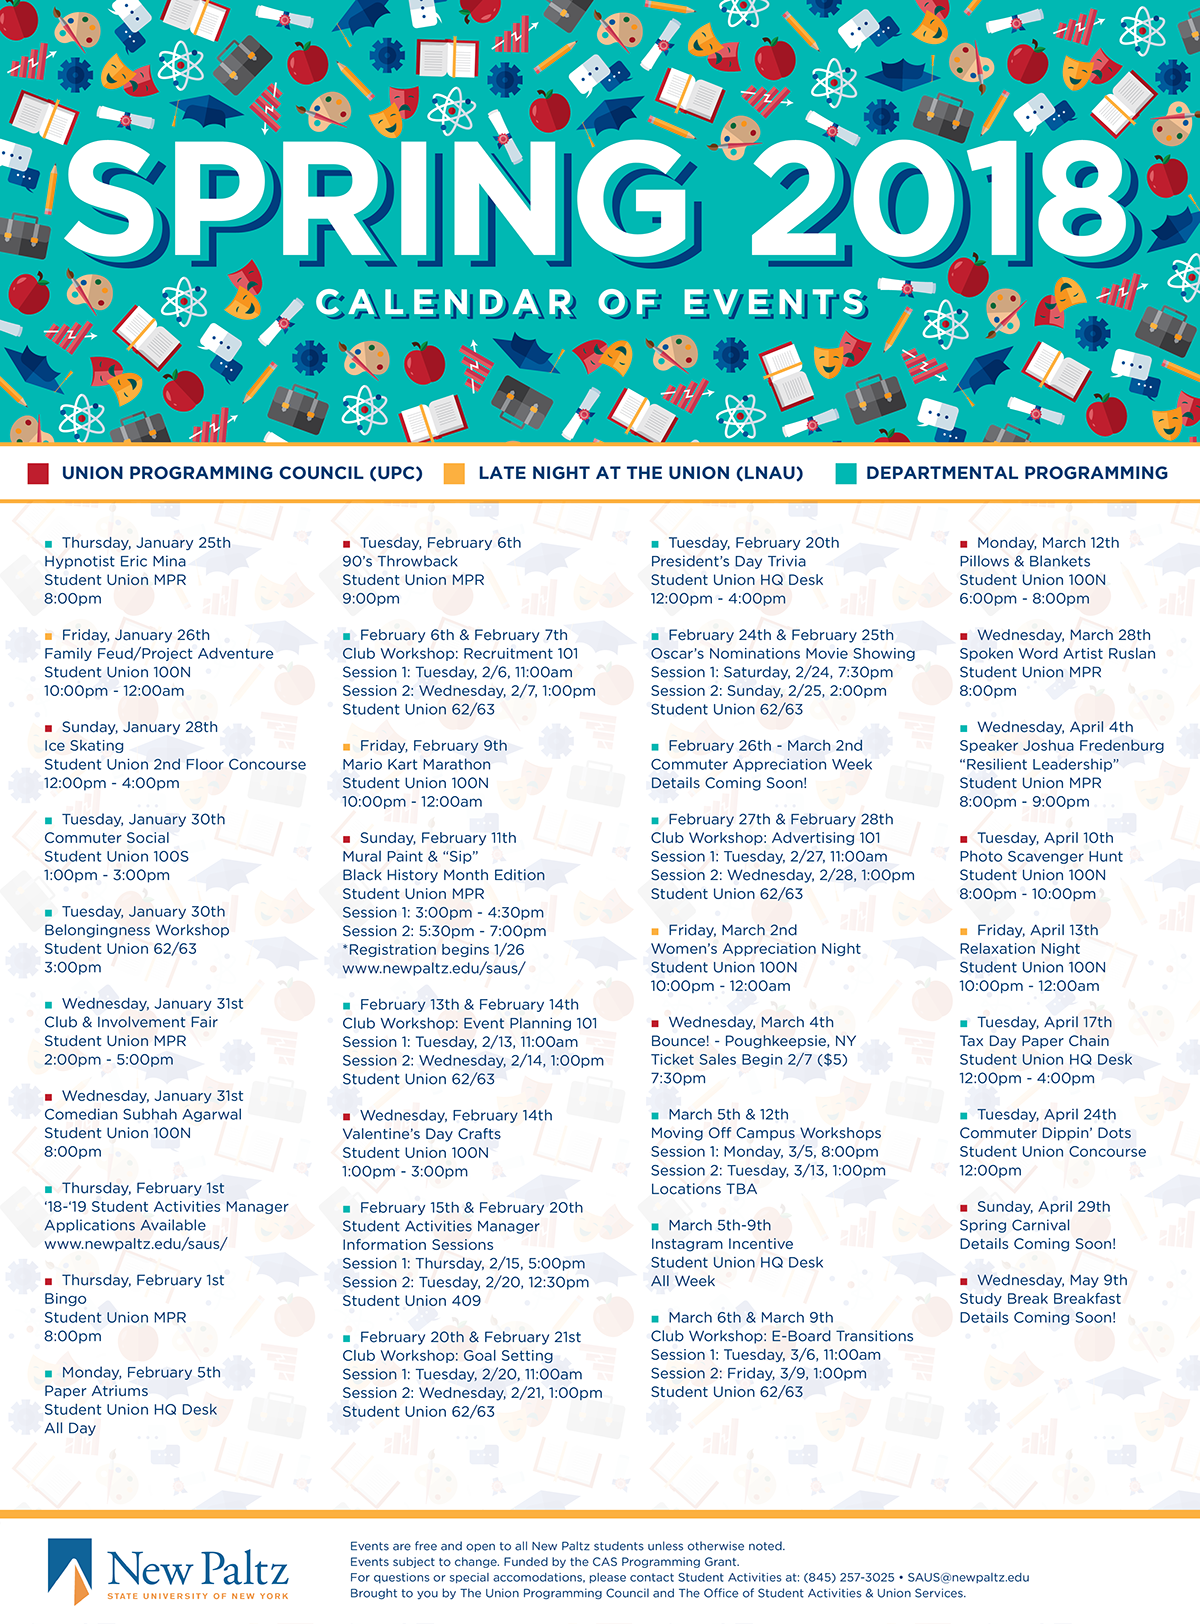 Suny New Paltz Spring 2018 Calendar Of Events On Behance Within Suny New Paltz Calendar